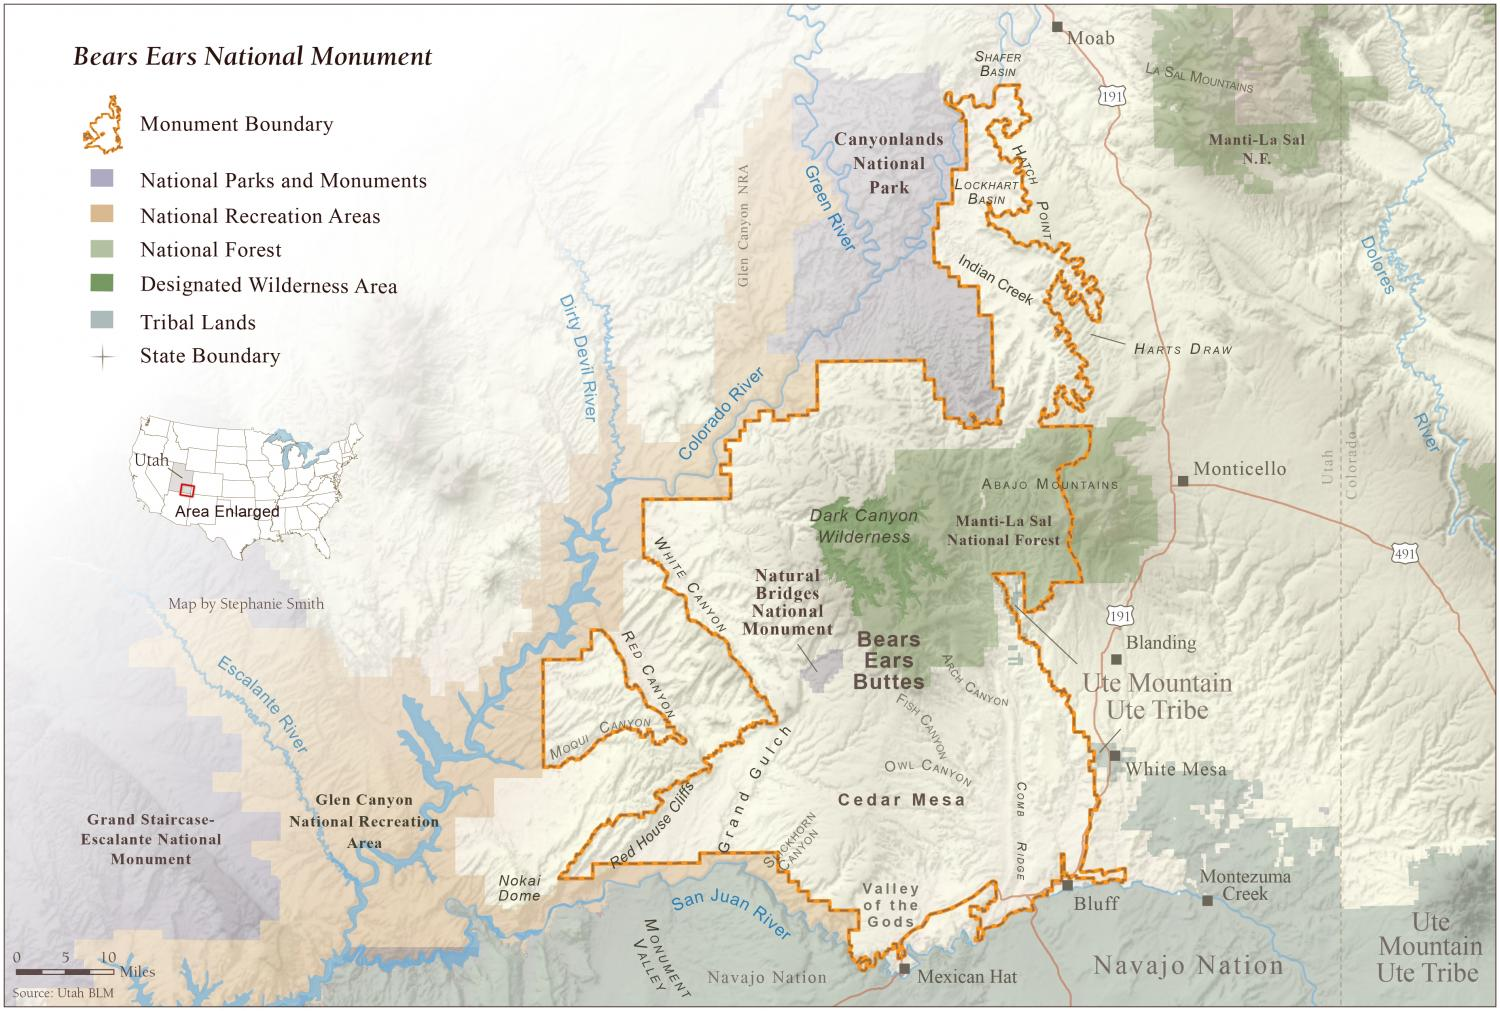 Map of the Bears Ears National Monument